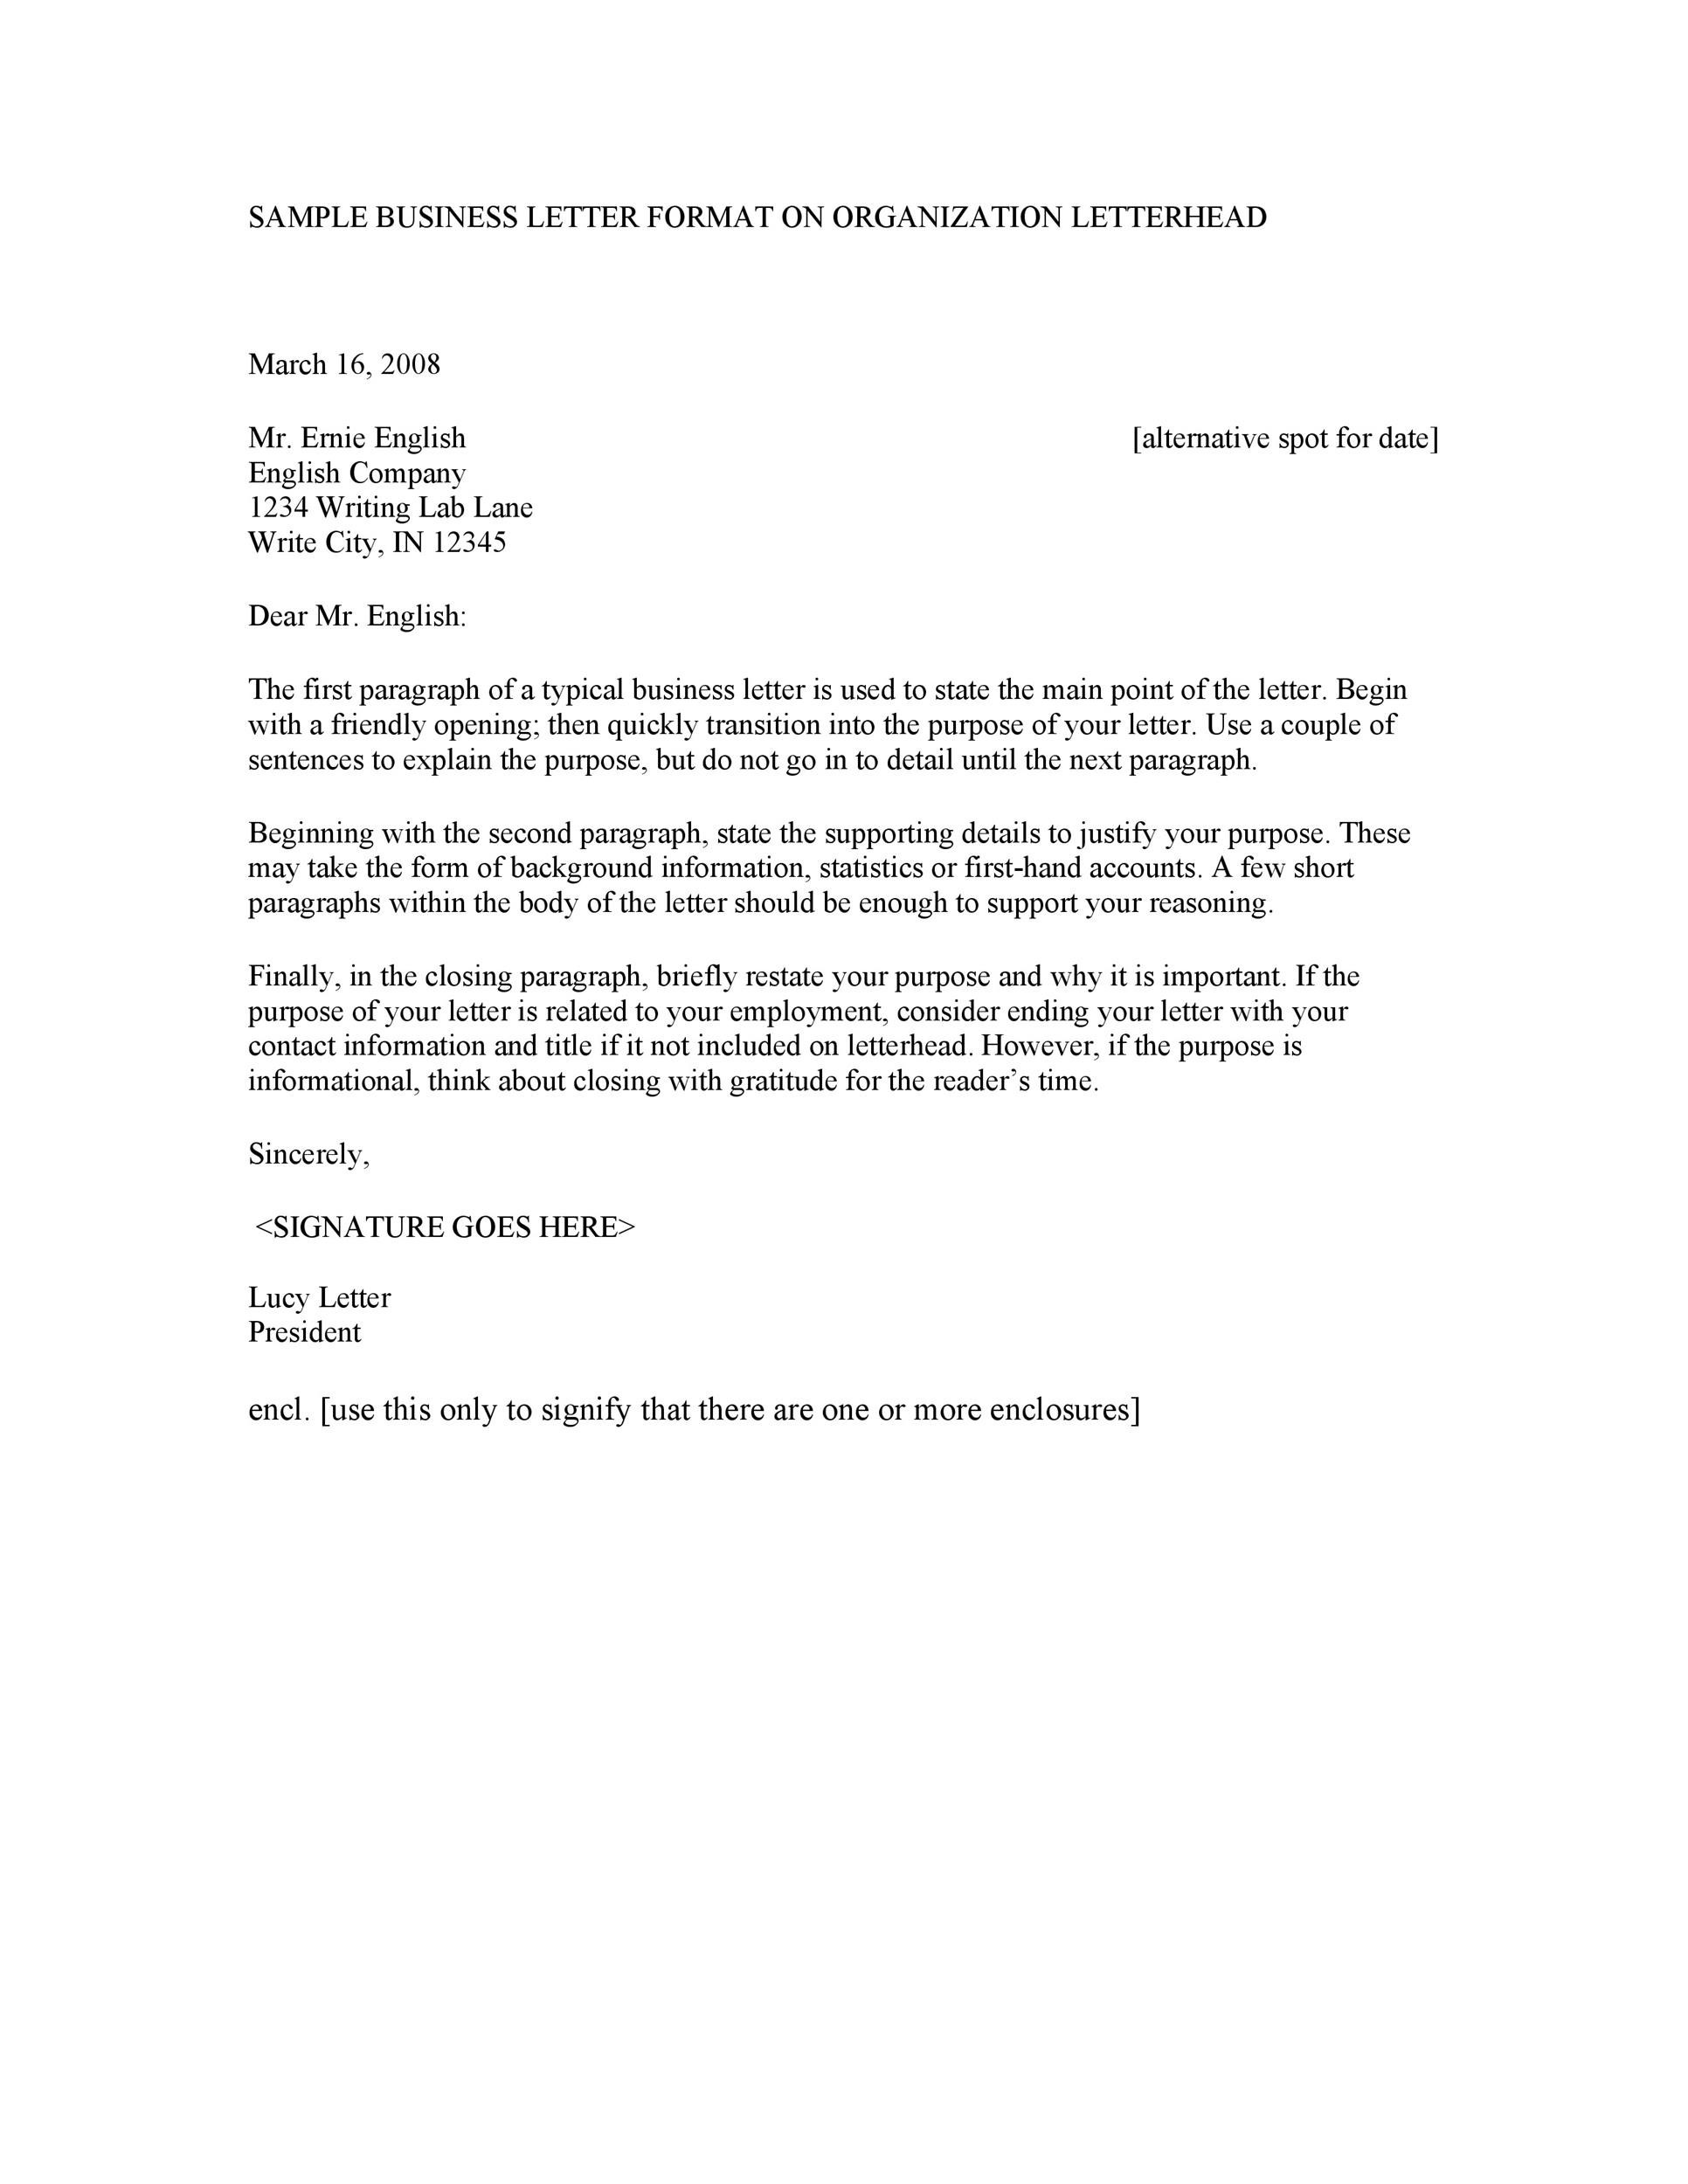 formal business letter examples 35 formal business letter format templates amp examples ᐅ 8766